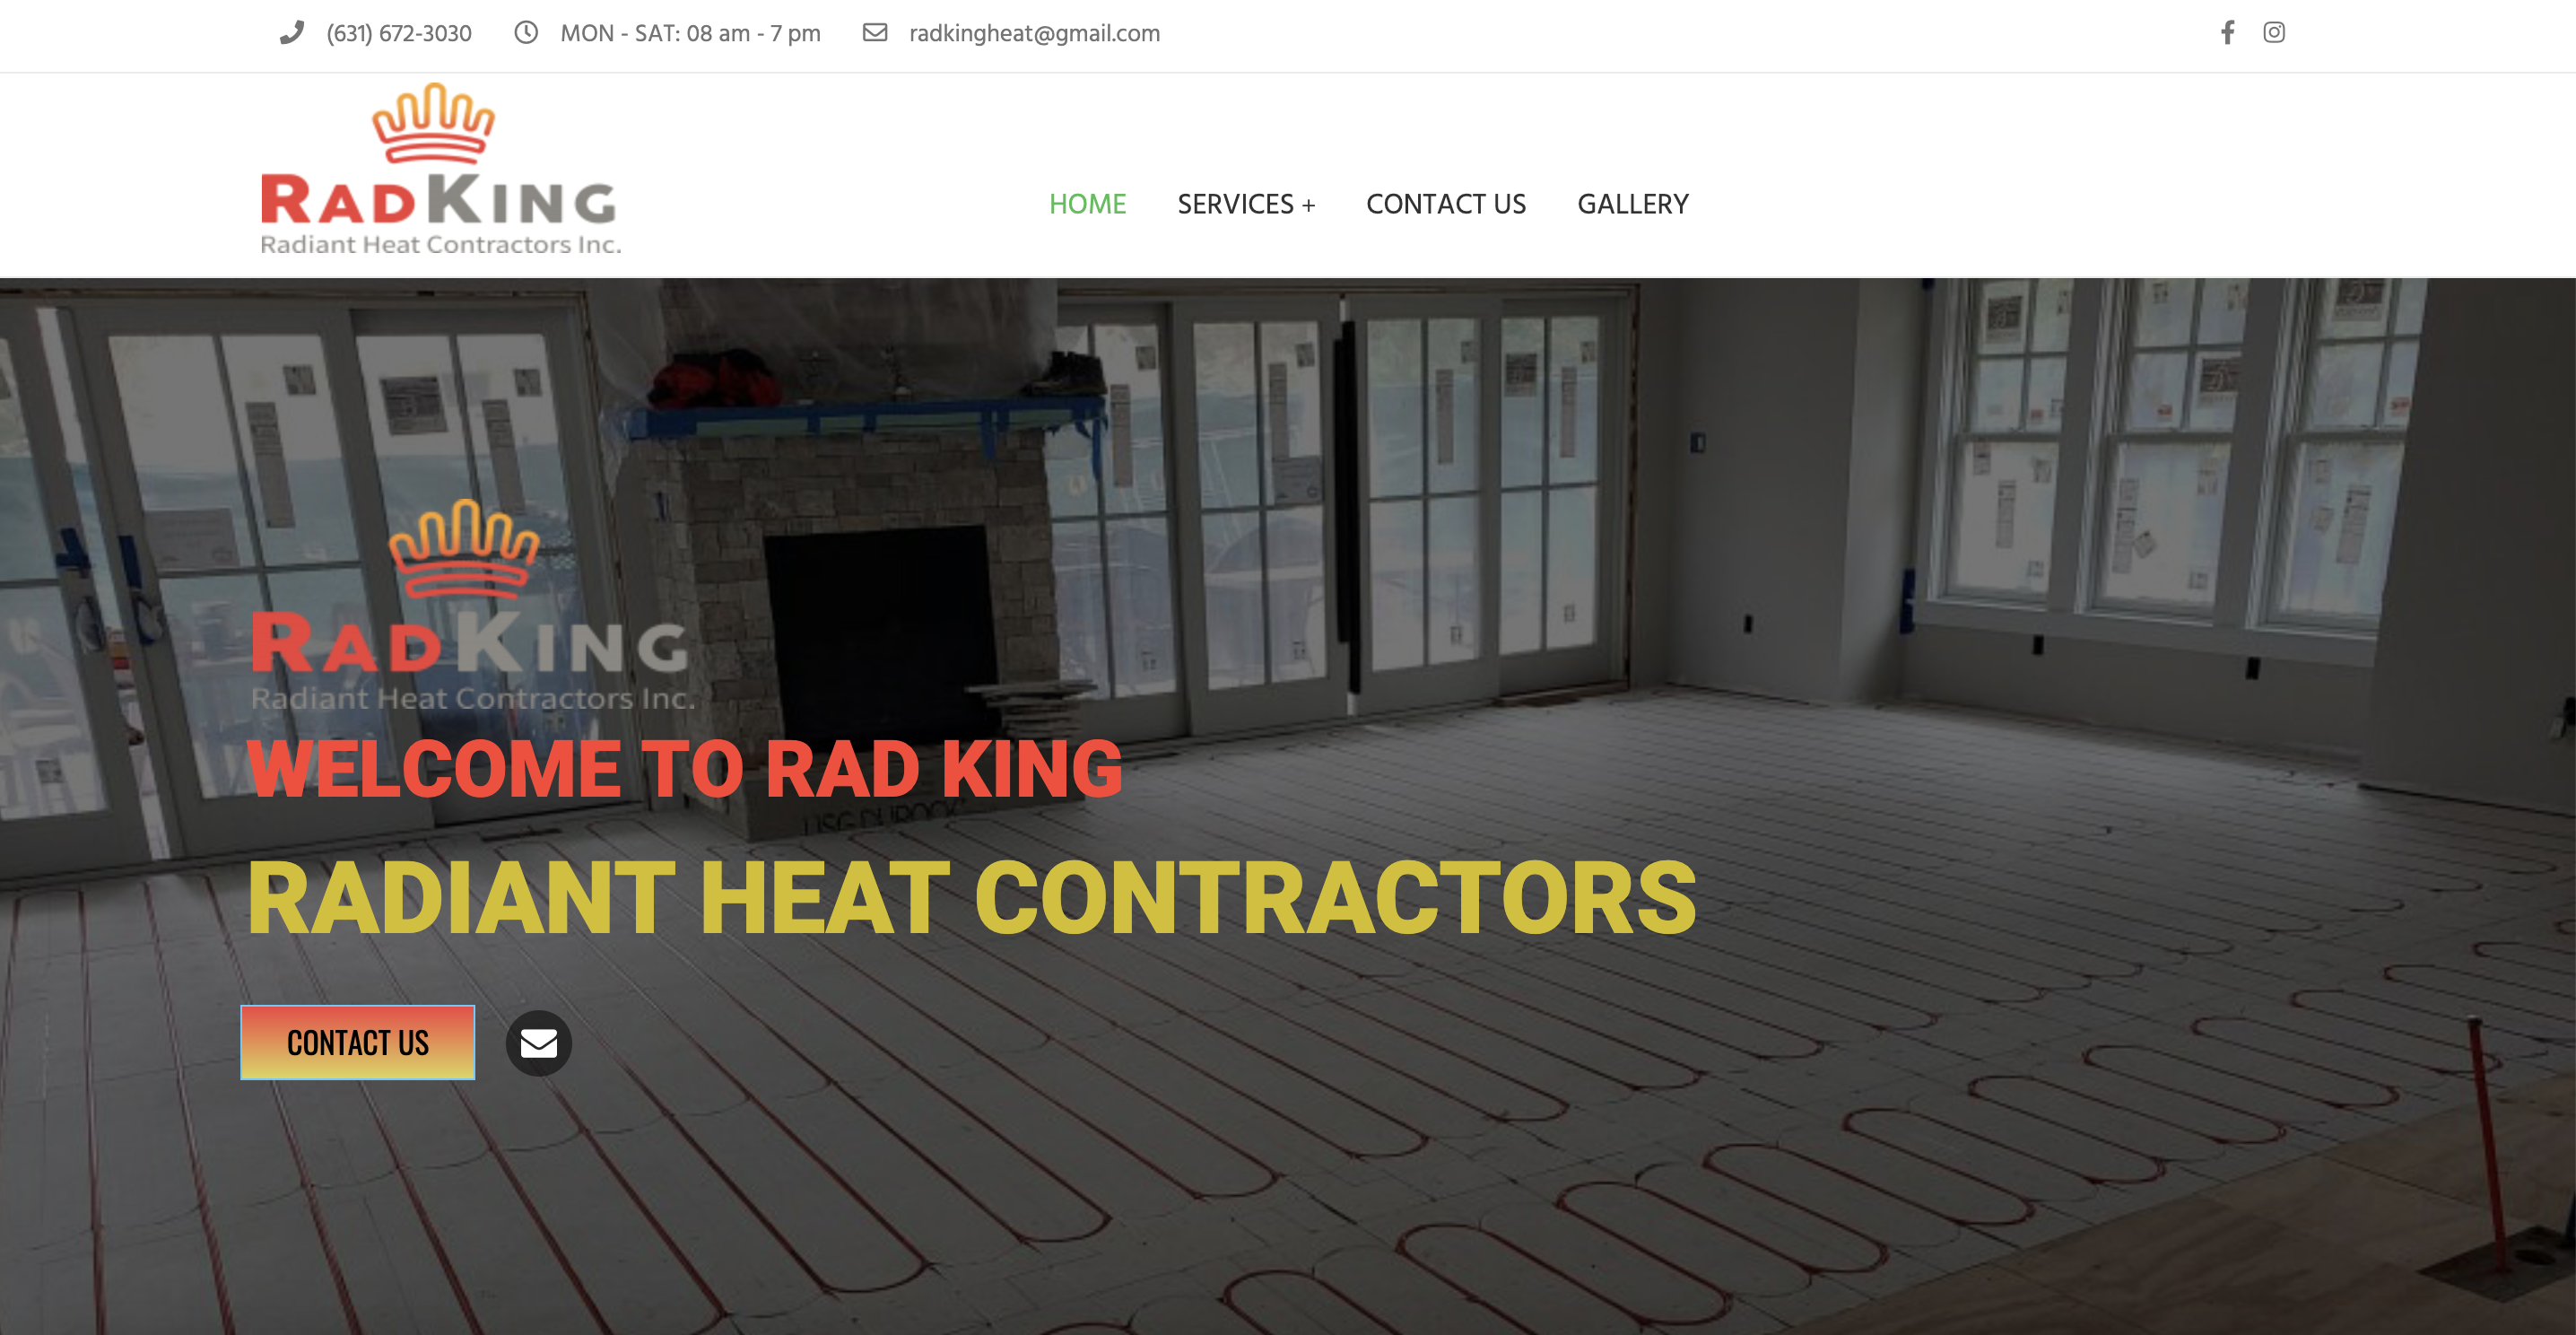 Rad King Radiant Heat Contractors Announce The Launch Of Their New Website